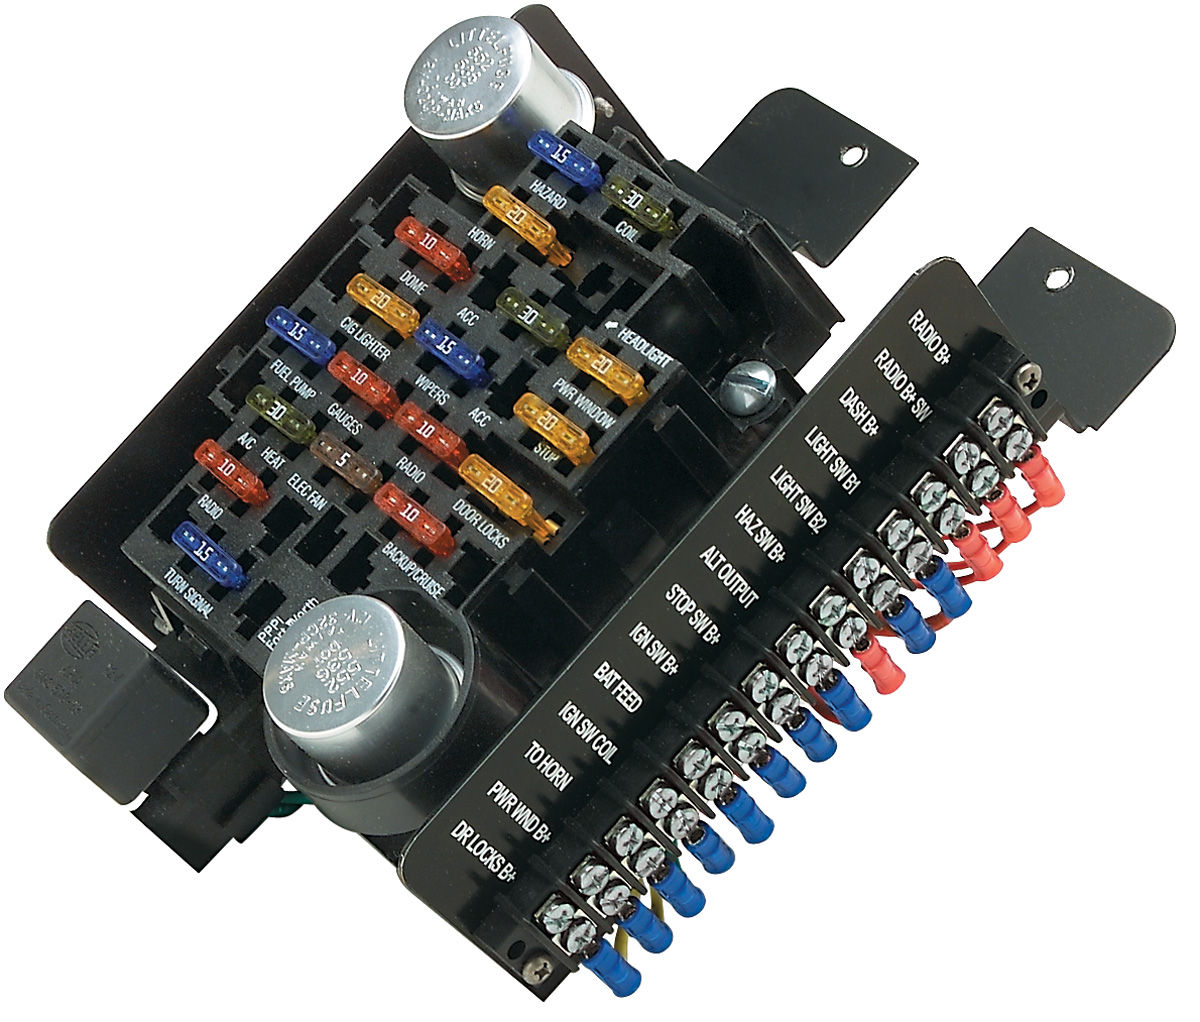 1972 chevelle ignition wiring diagram free vehicle expense log template painless performance 1961-1977 cutlass/442 circuit fuse block 20-circuit @ opgi.com